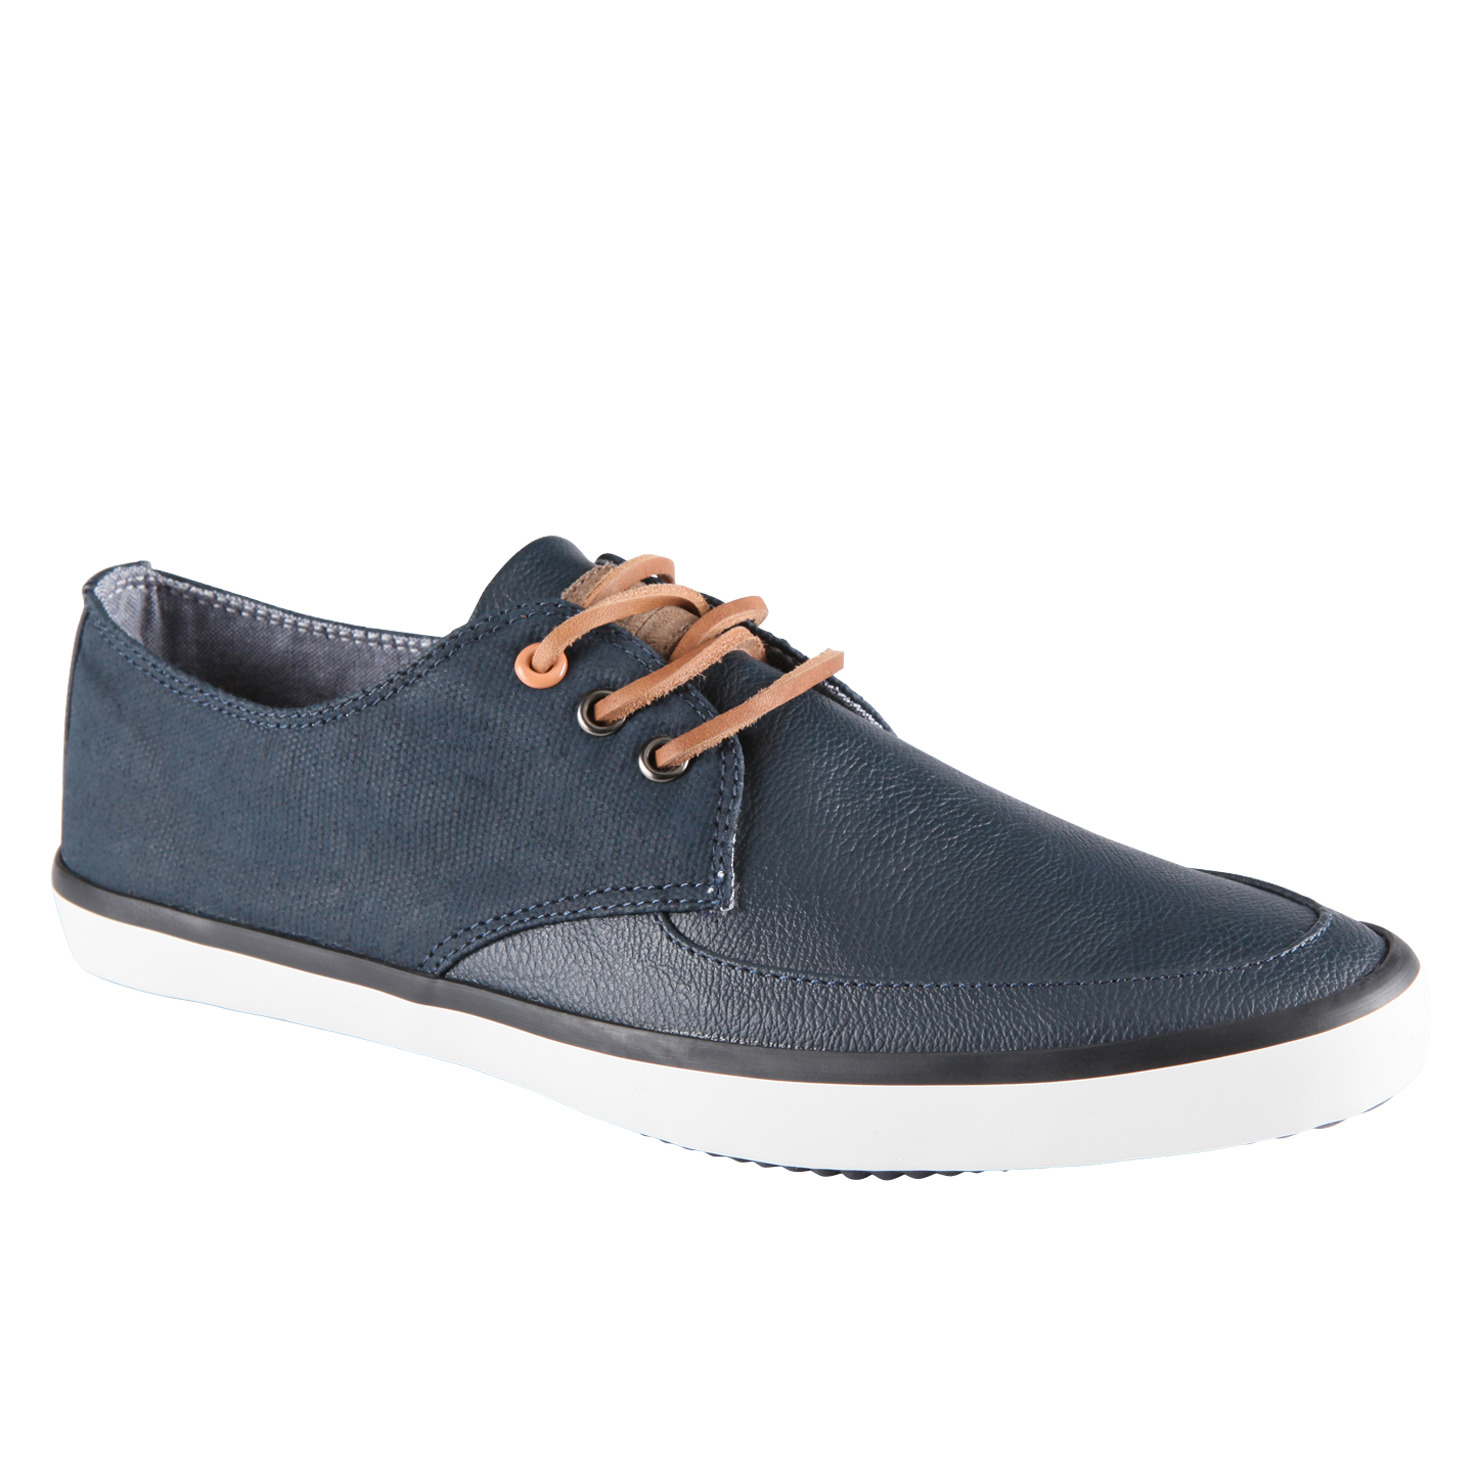 Shop Aldo Men's Shoes at up to 70% off! Get the lowest price on your favorite brands at Poshmark. Poshmark makes shopping fun, affordable & easy!